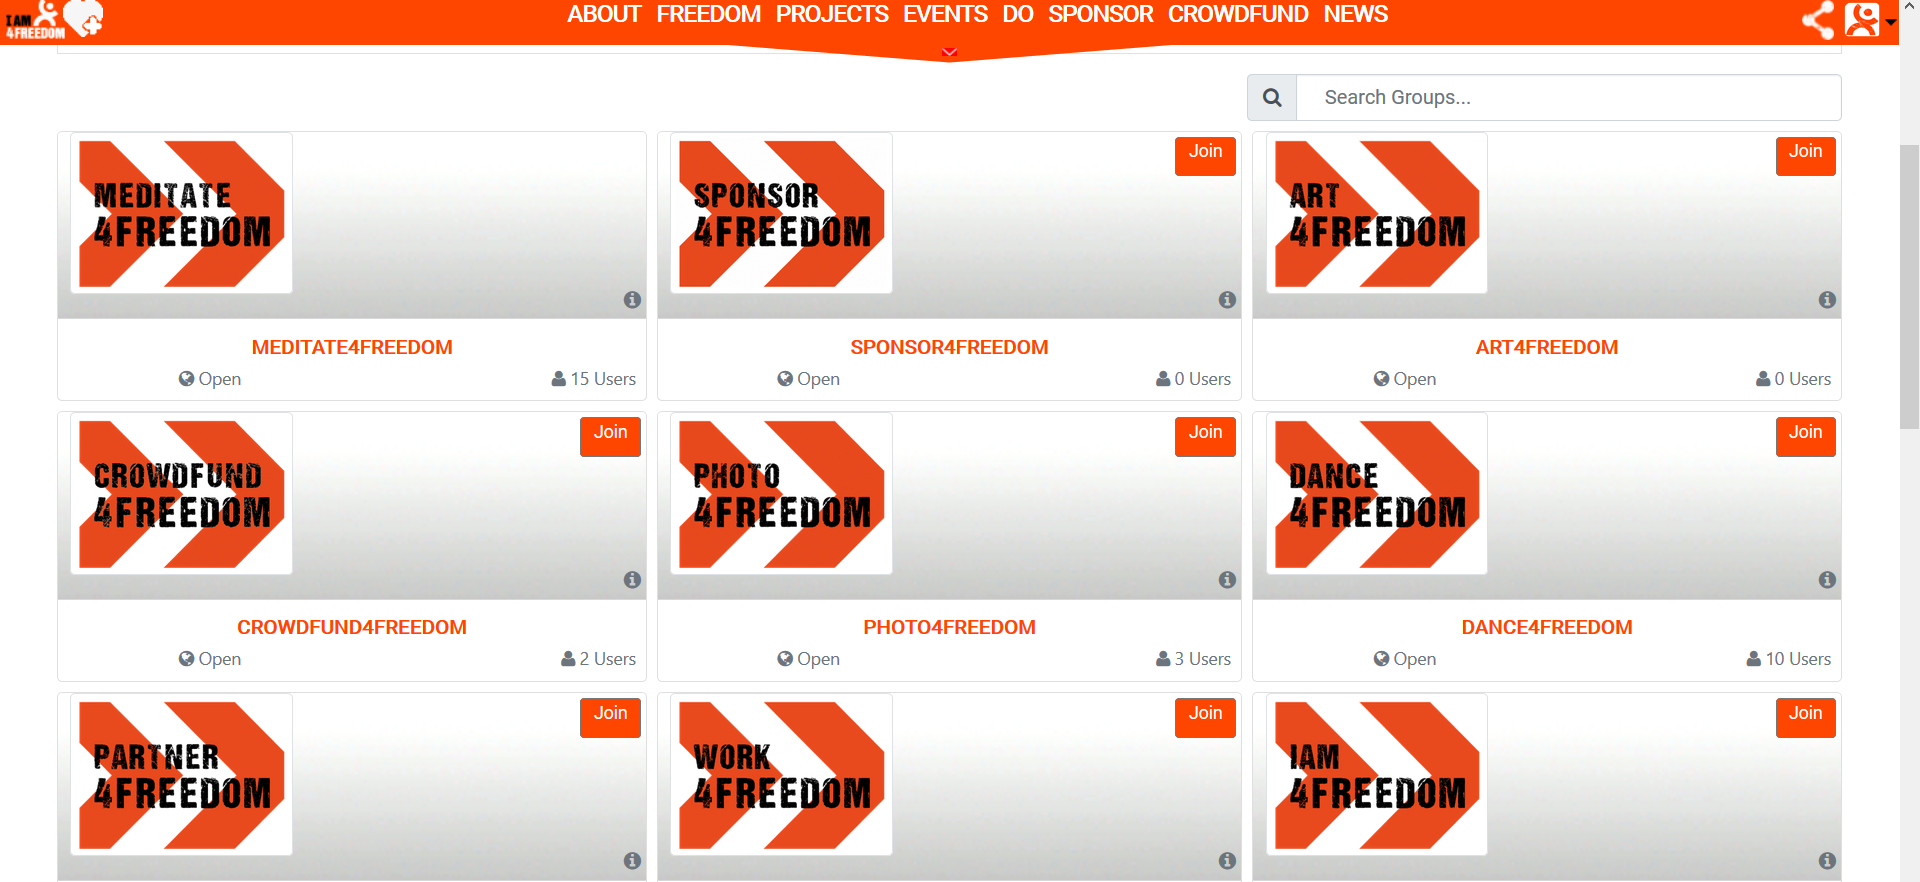 Screenshot 4freedom groups